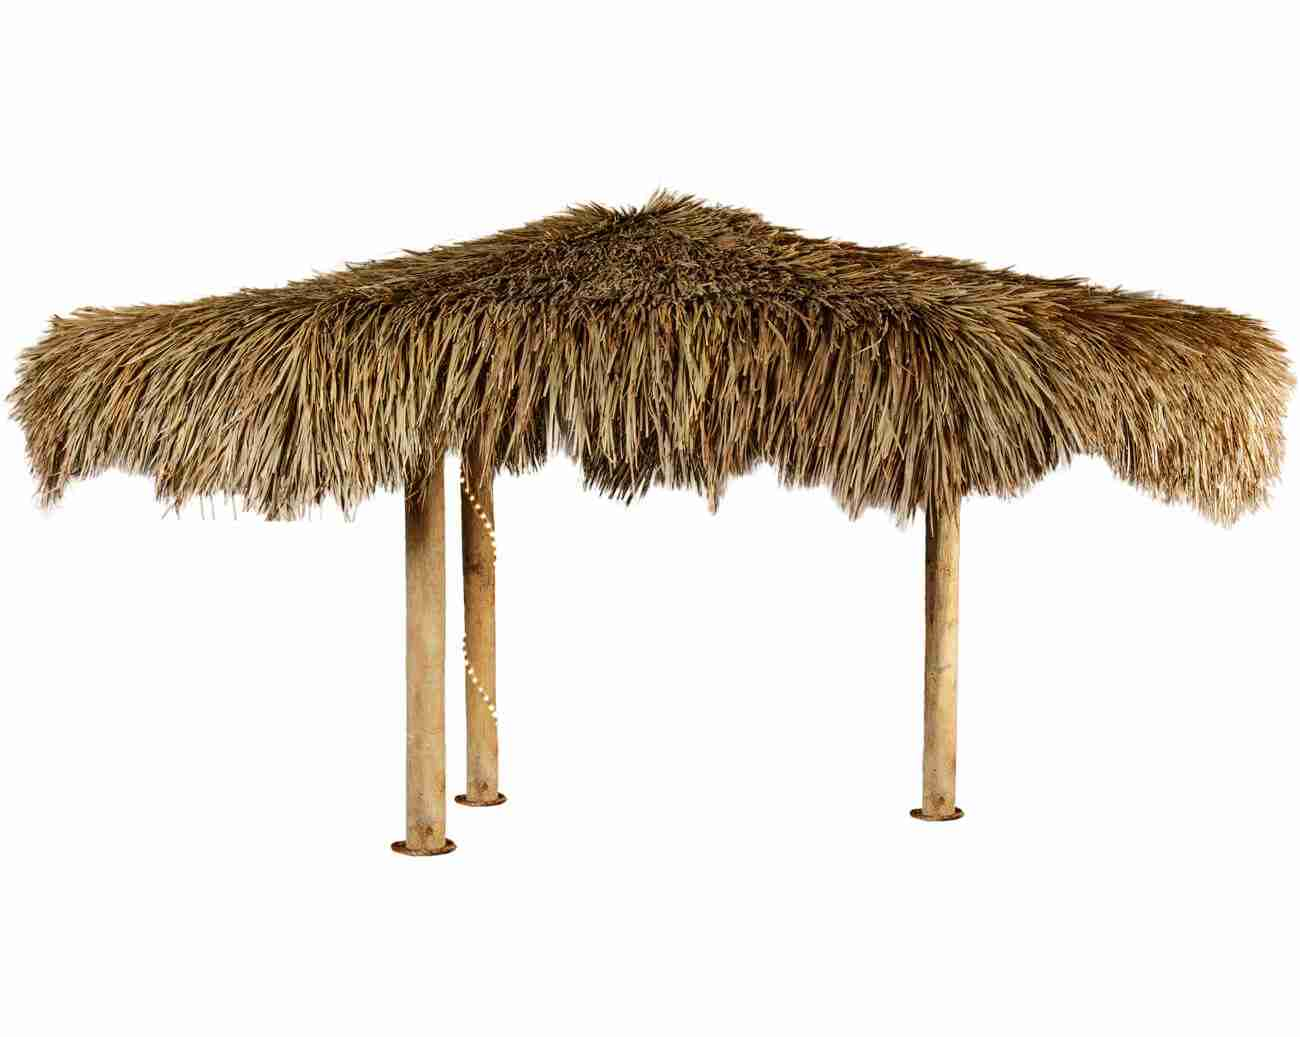 Where Did Tiki Huts Come From?